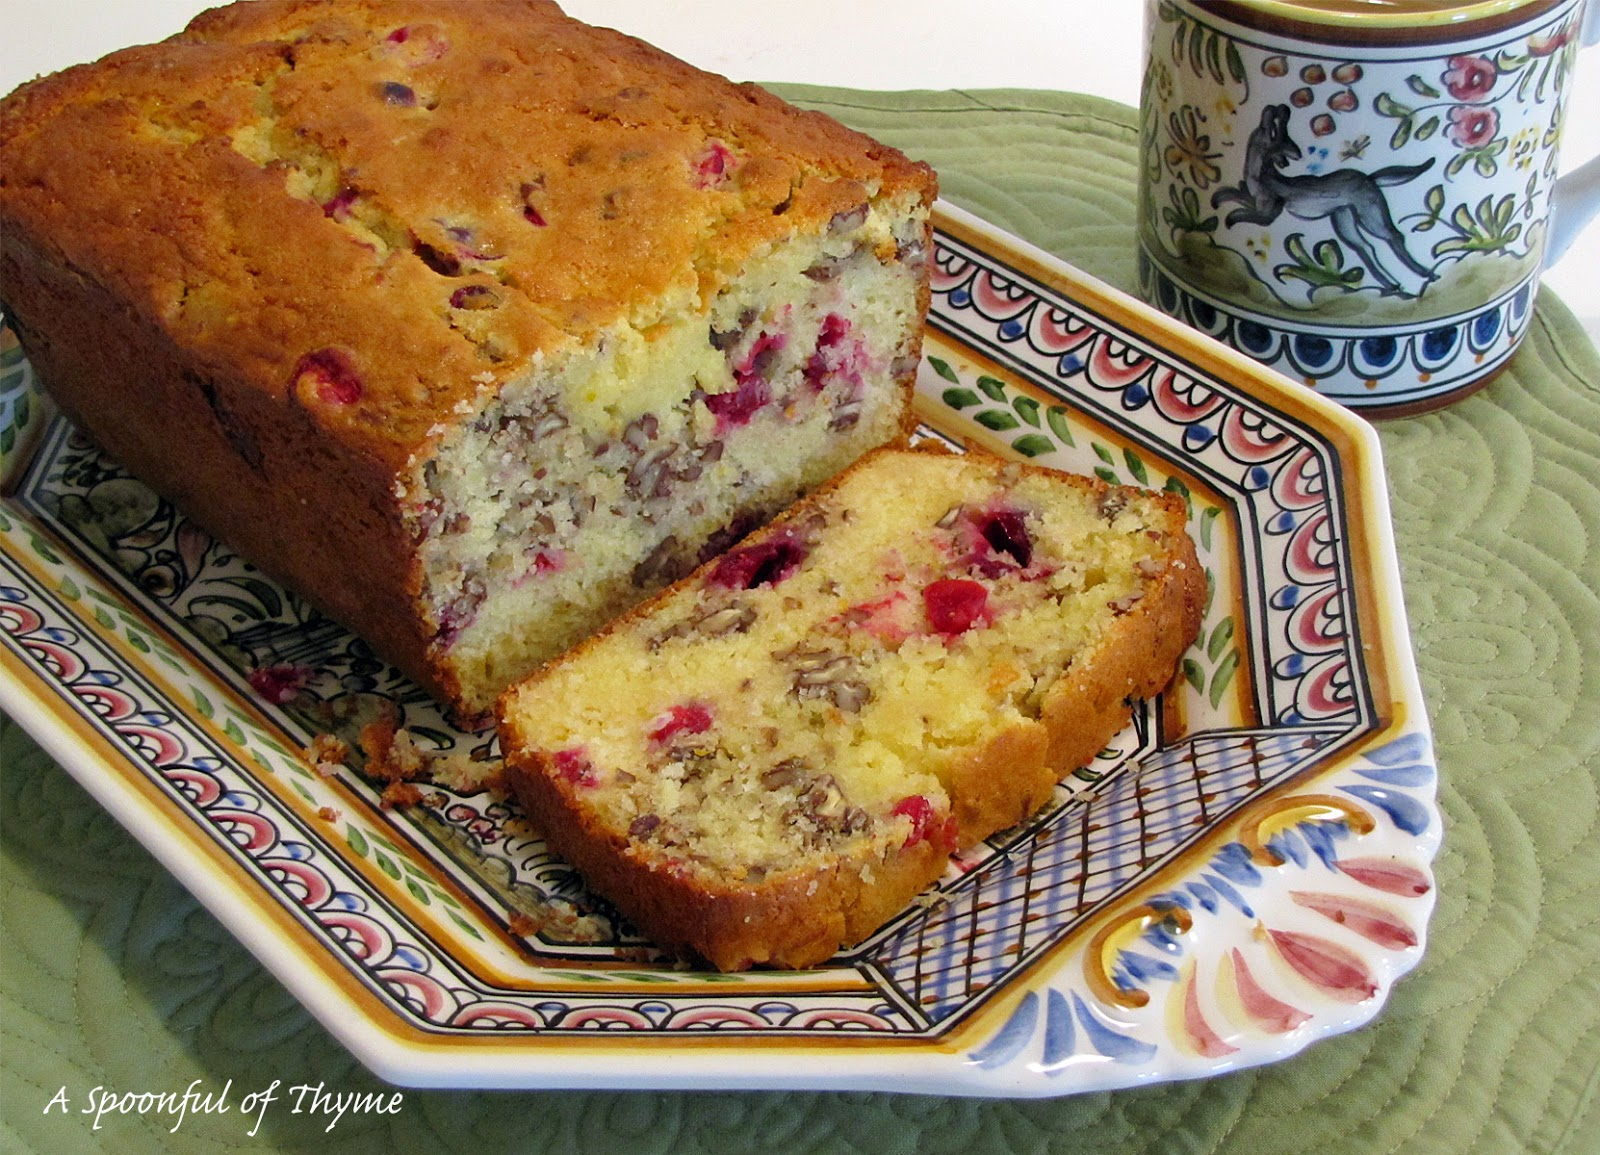 A Spoonful of Thyme: Cranberry Orange Yogurt Bread